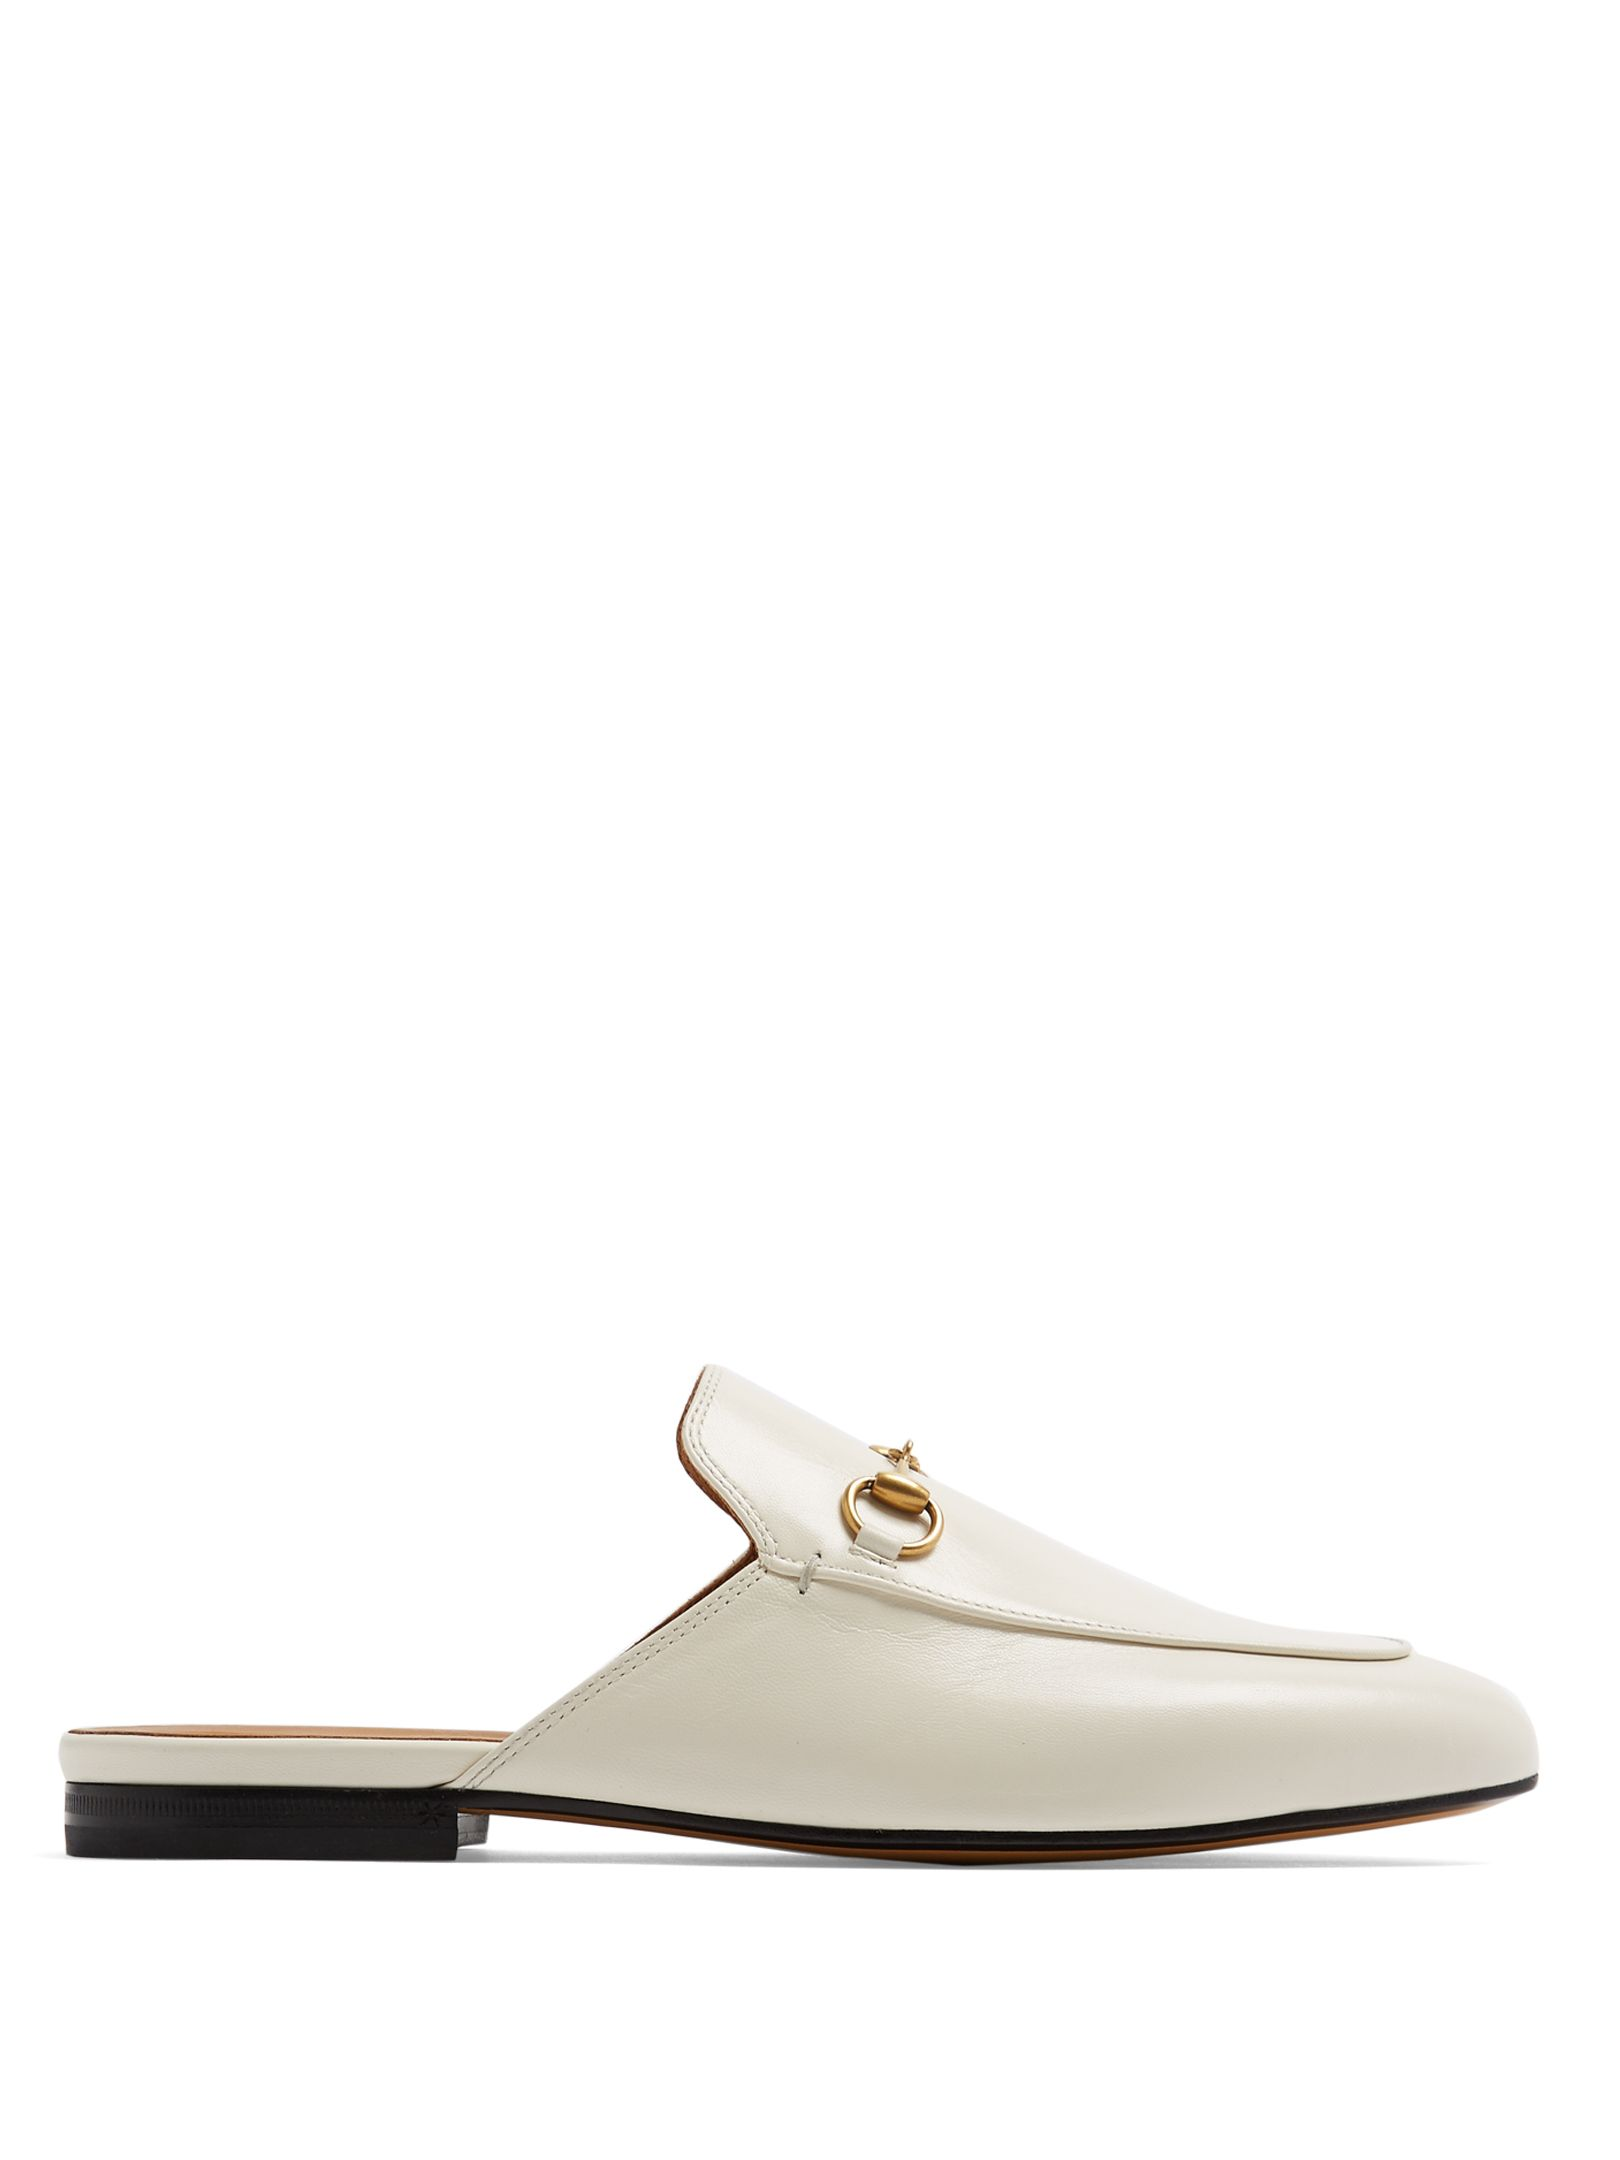 80411b65b2f Click here to buy Gucci Princetown leather backless loafers at  MATCHESFASHION.COM